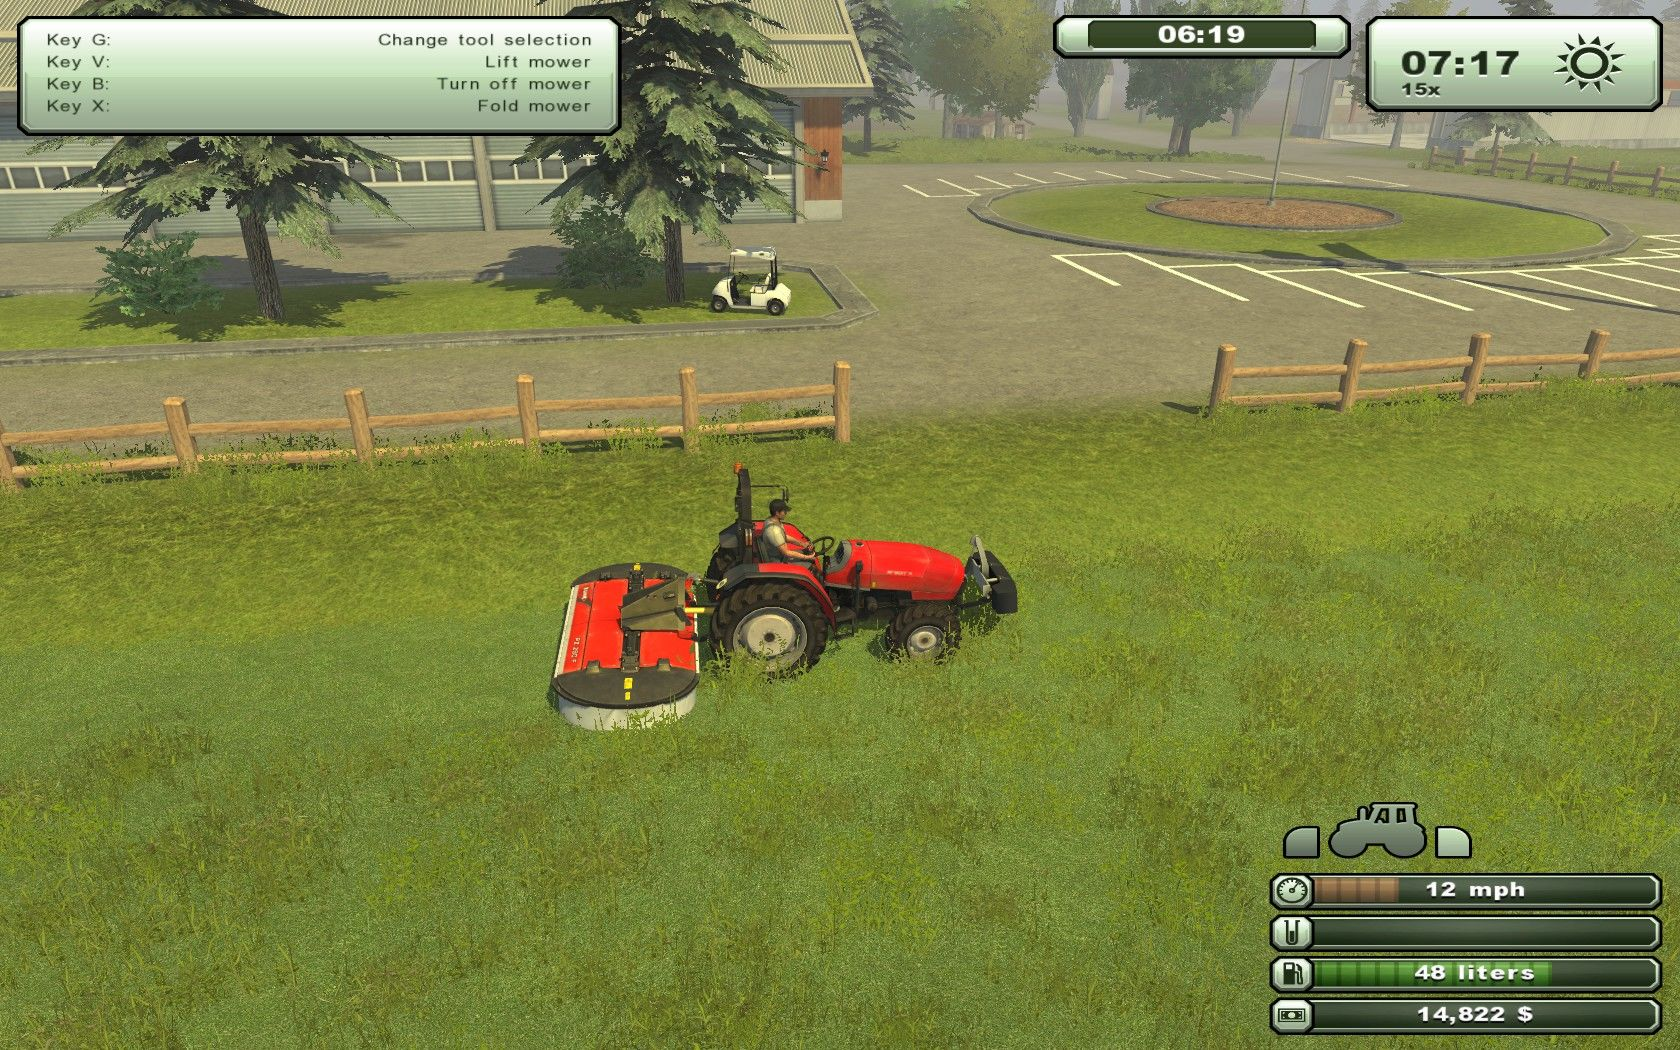 Farming Simulator 2013 Windows Mowing the local golf course.